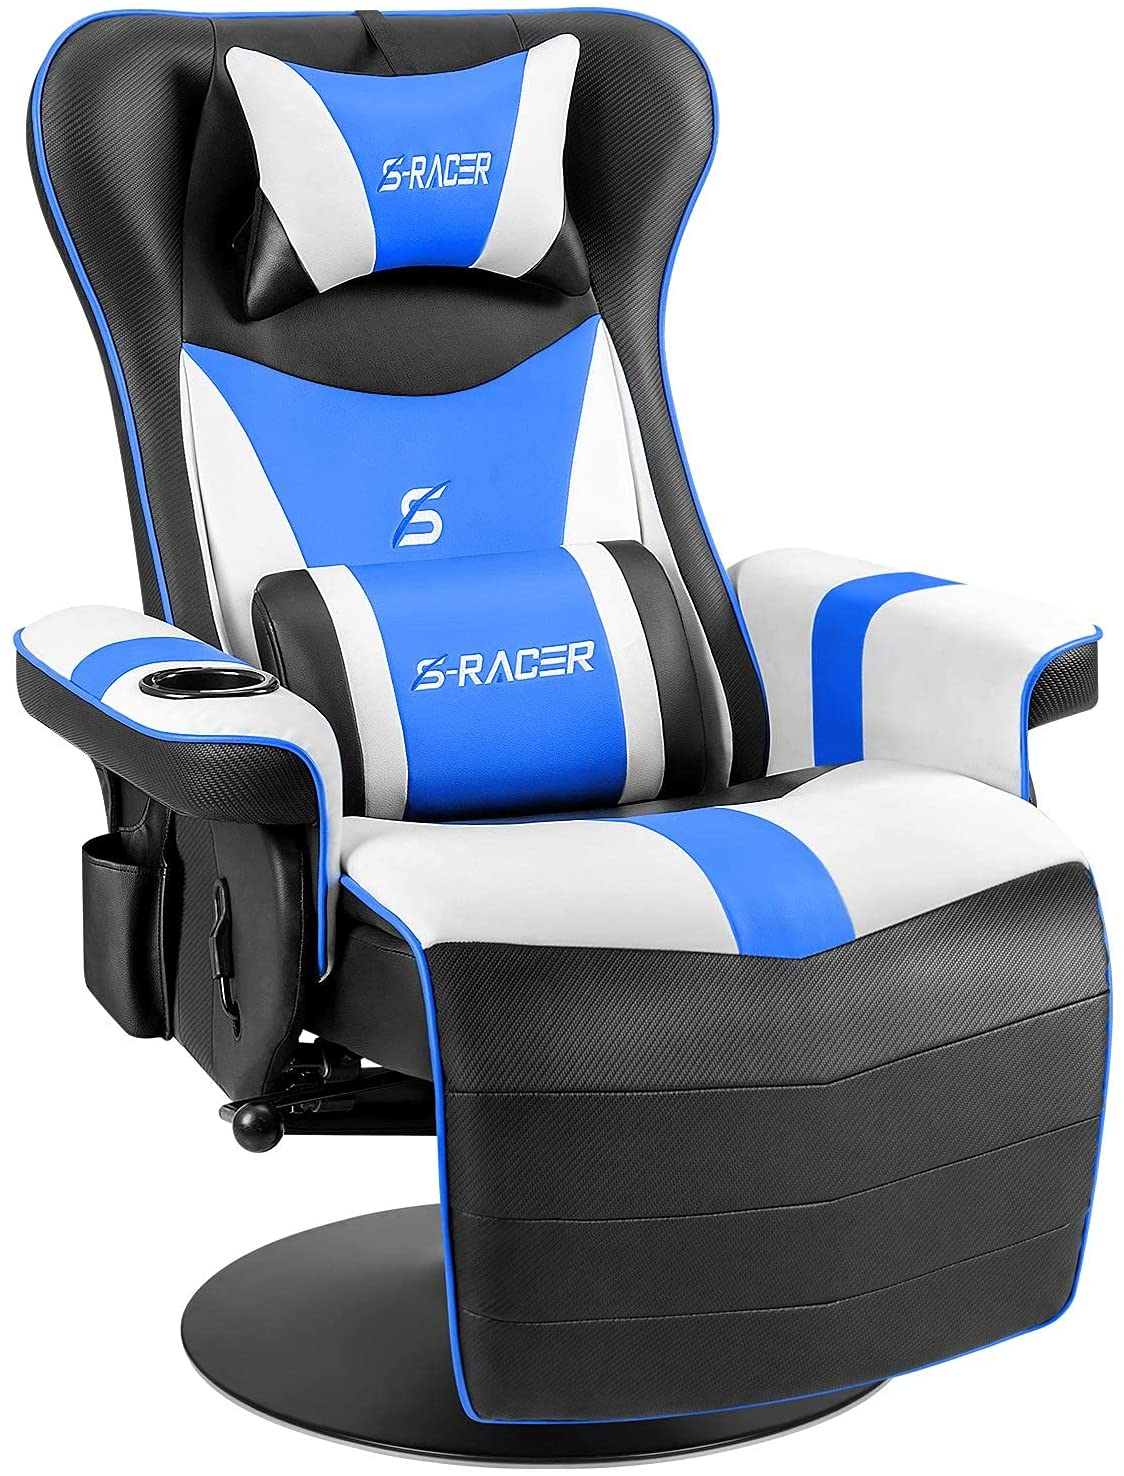 Furniwell Gaming Recliner Chair